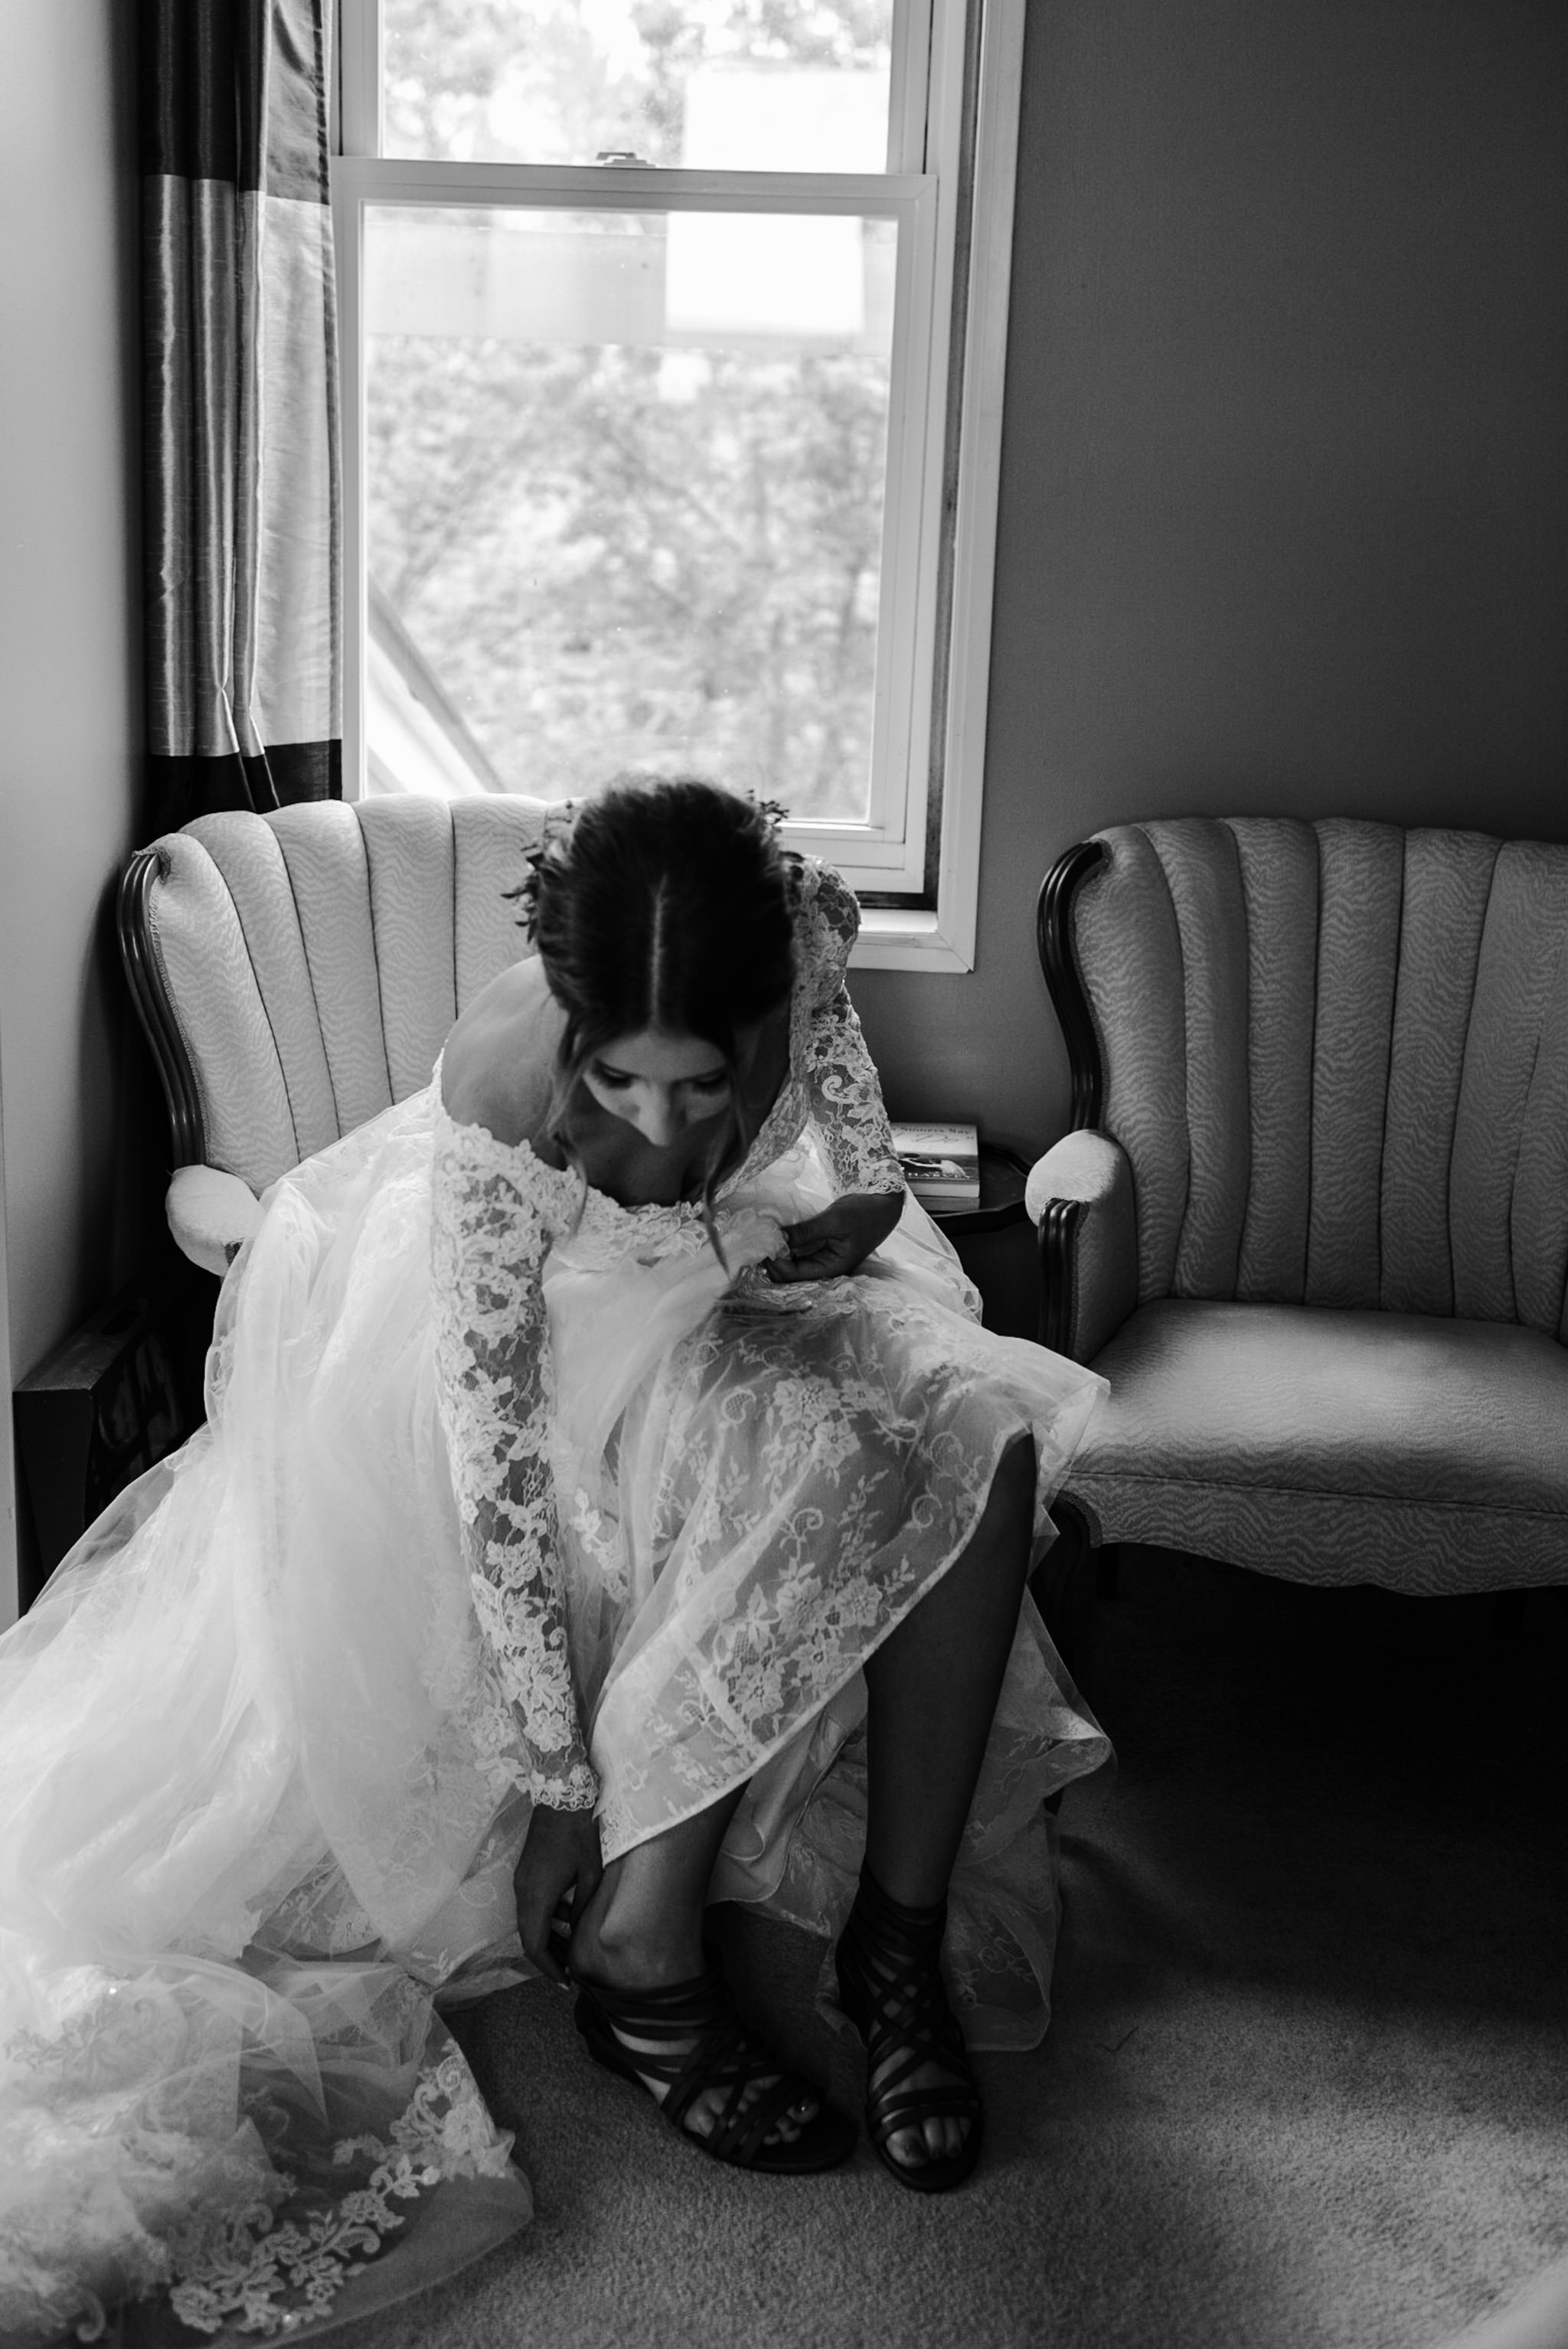 201-bride-toronto-photographer-ottawa-reading-letter-from-groom.jpg